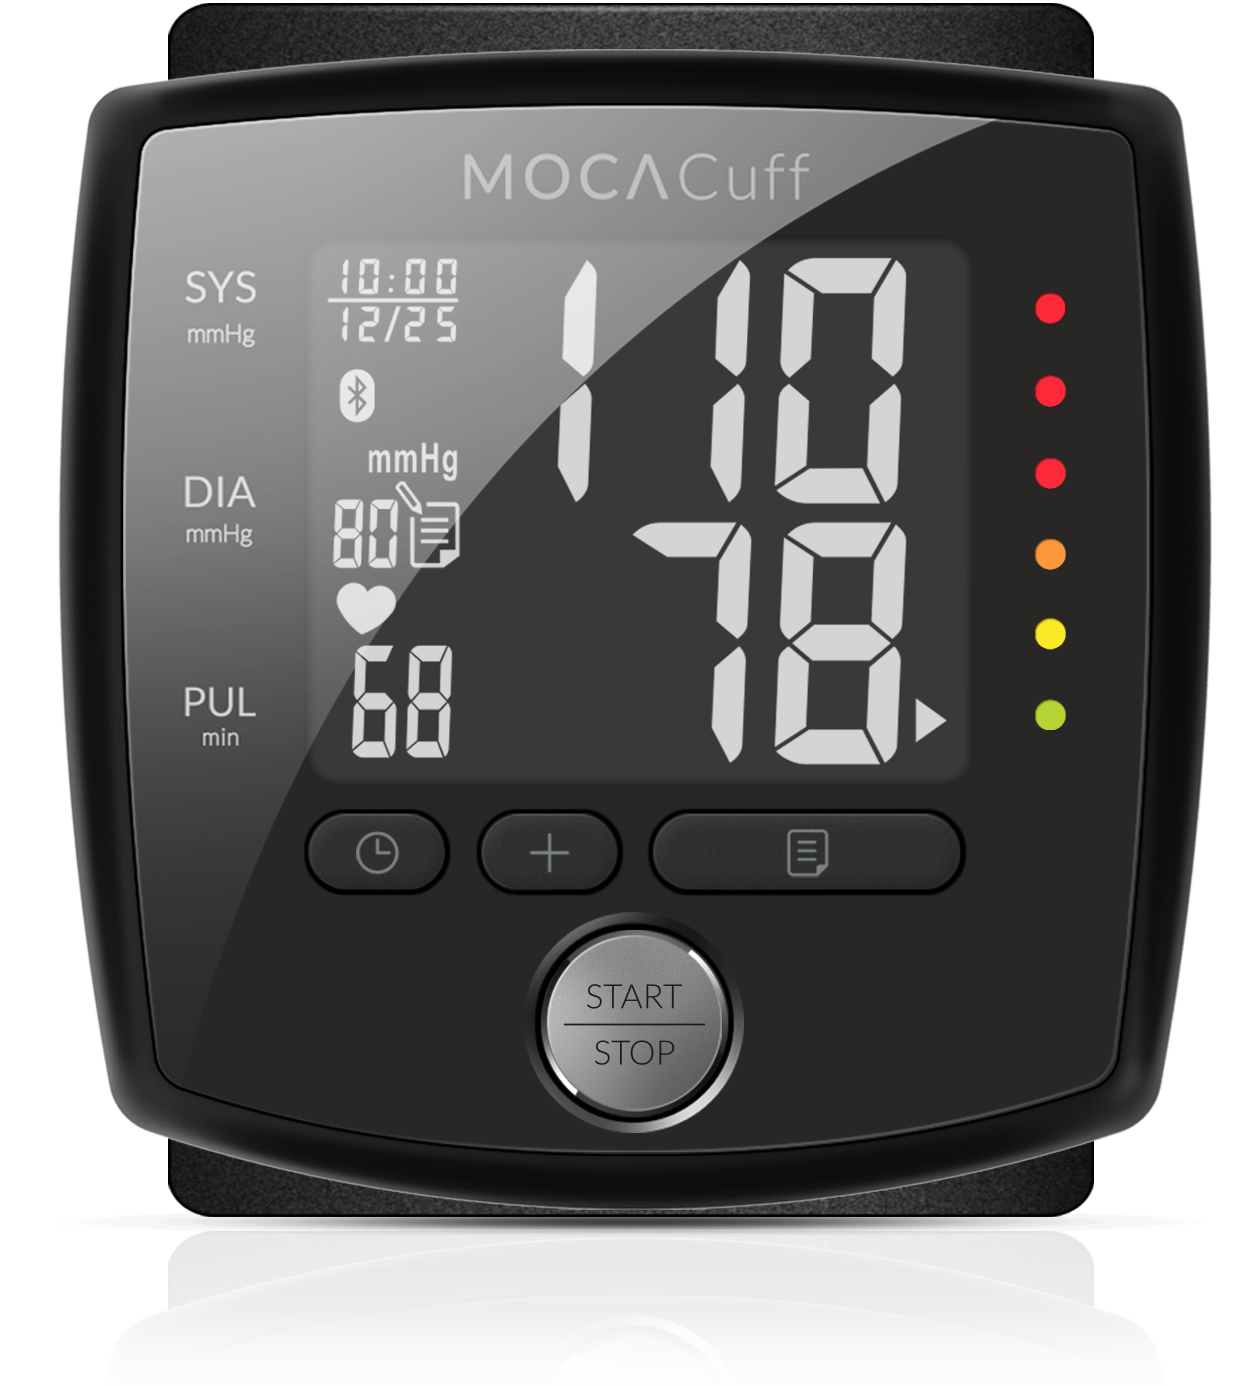 MOCAheart - A Vital Signs Monitor in Your Pocket